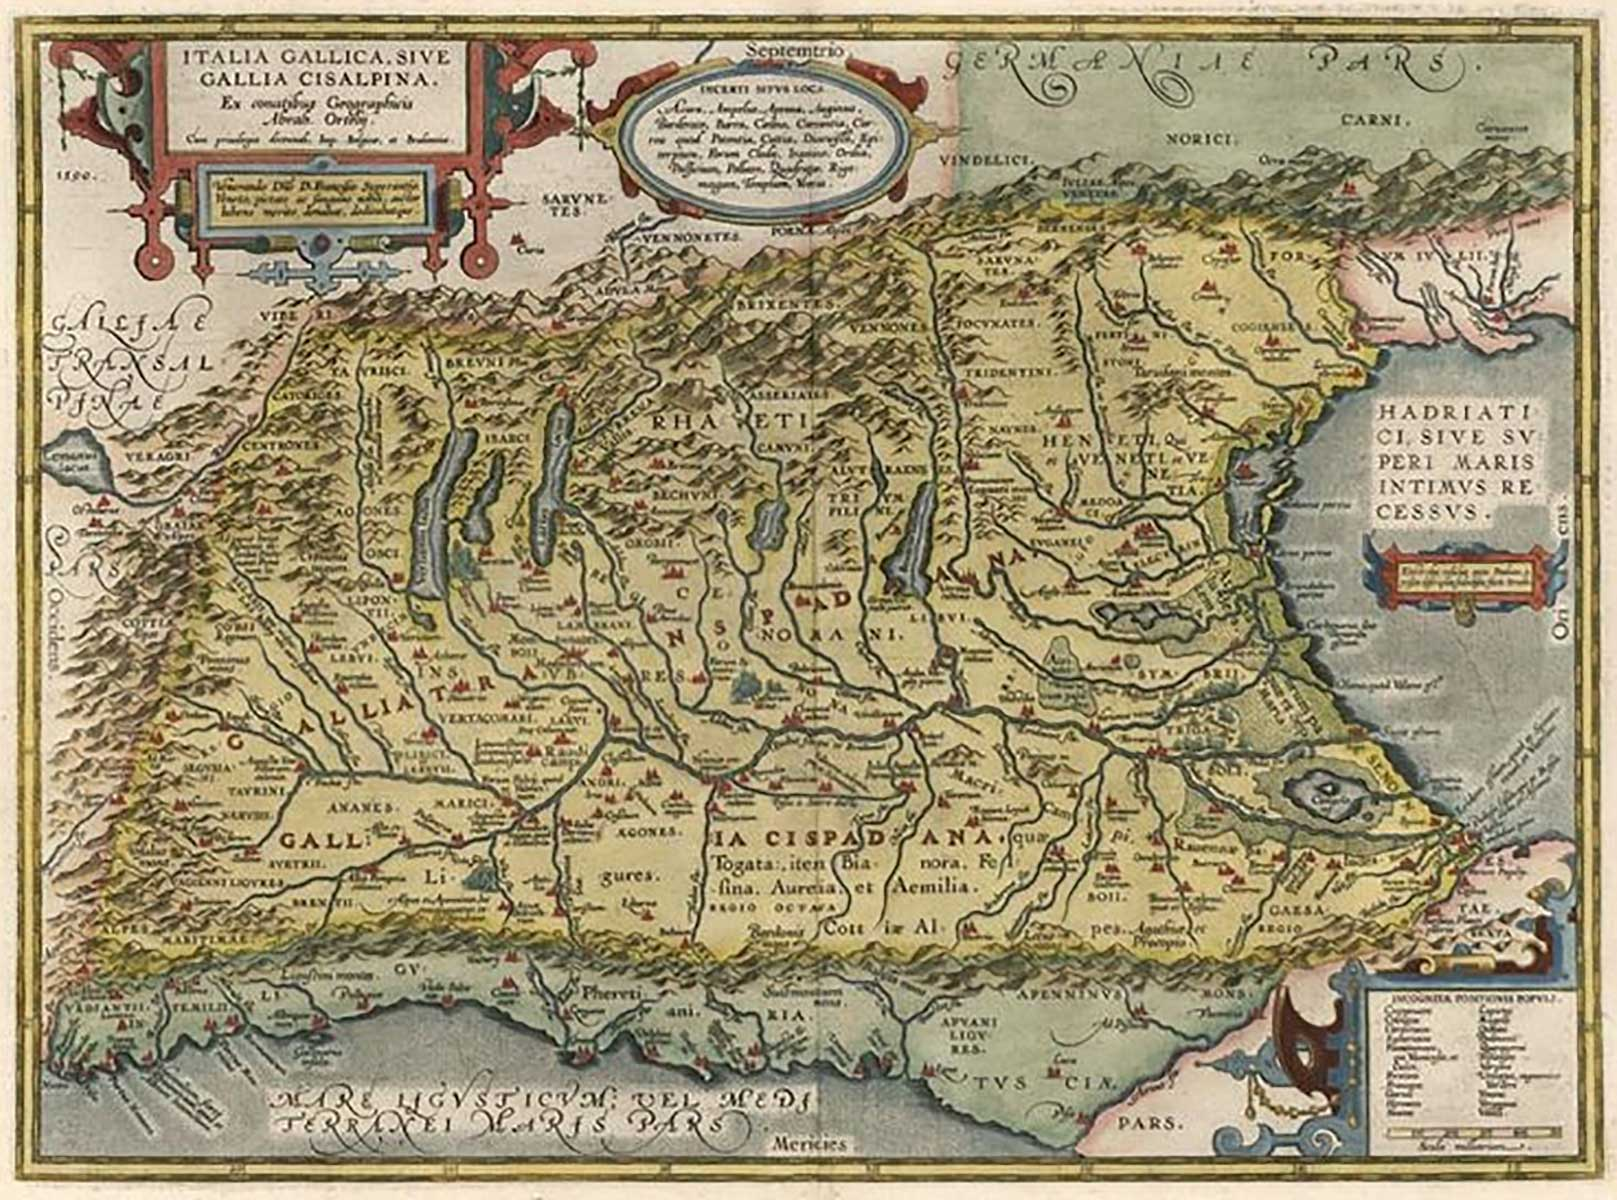 Cisalpine Gaul, extending from Venice by the Adriatic Sea, to Pisa and Nice by the Mediterranean, to Lake Geneva and the Alps, map from Abraham Ortelius  Theatrum Orbis Terrarum , Antwerp, 1608.